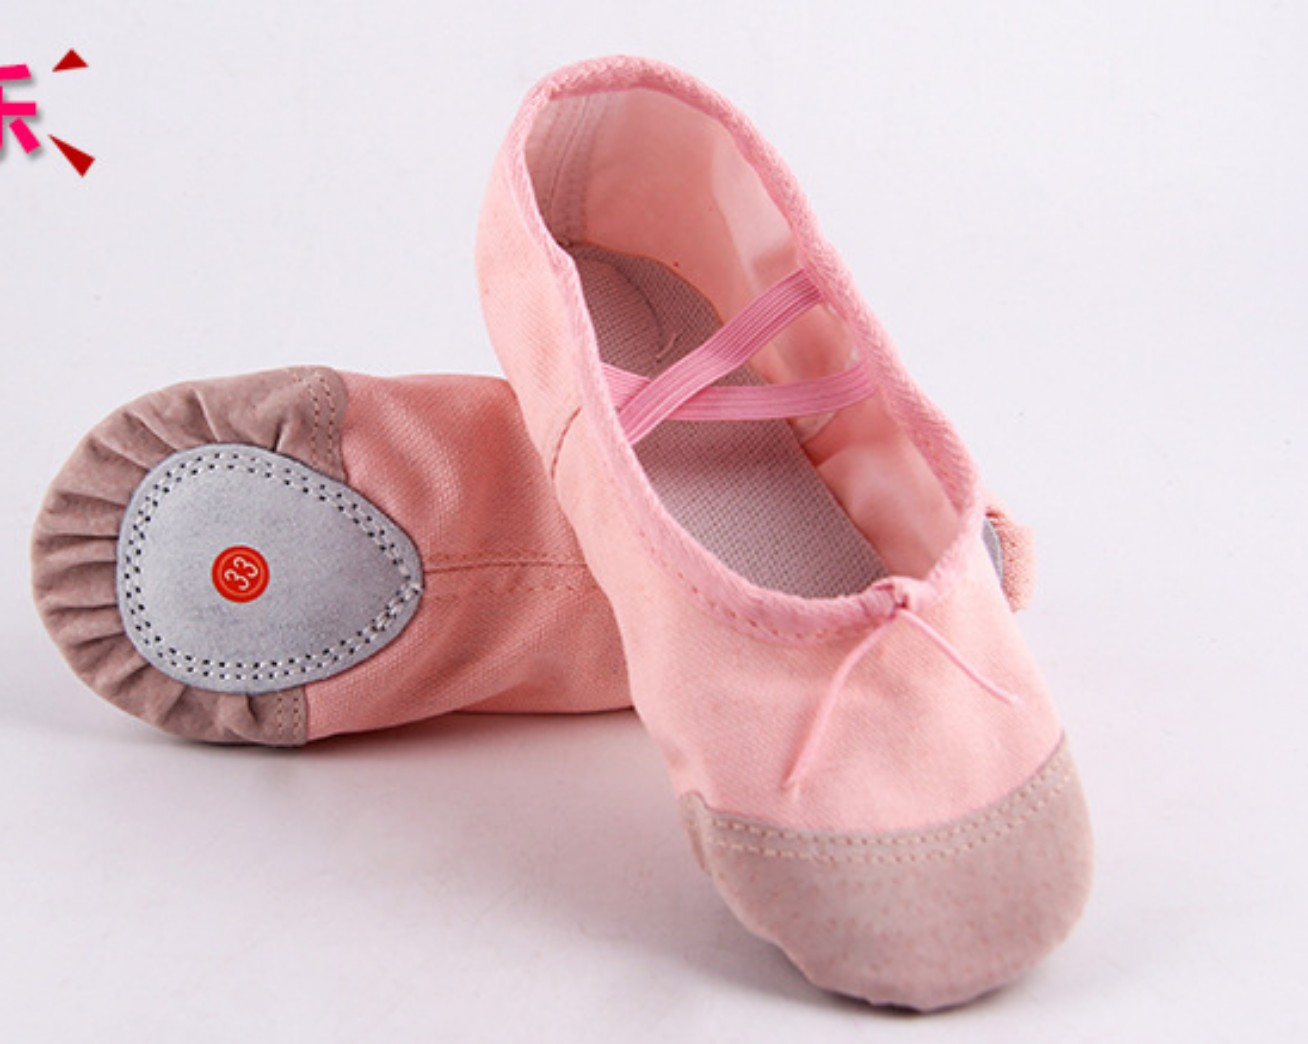 Pudcoco New Brand New Baby Pink Ballet Dance Toe shoes Professional Satin Pointe Shoes